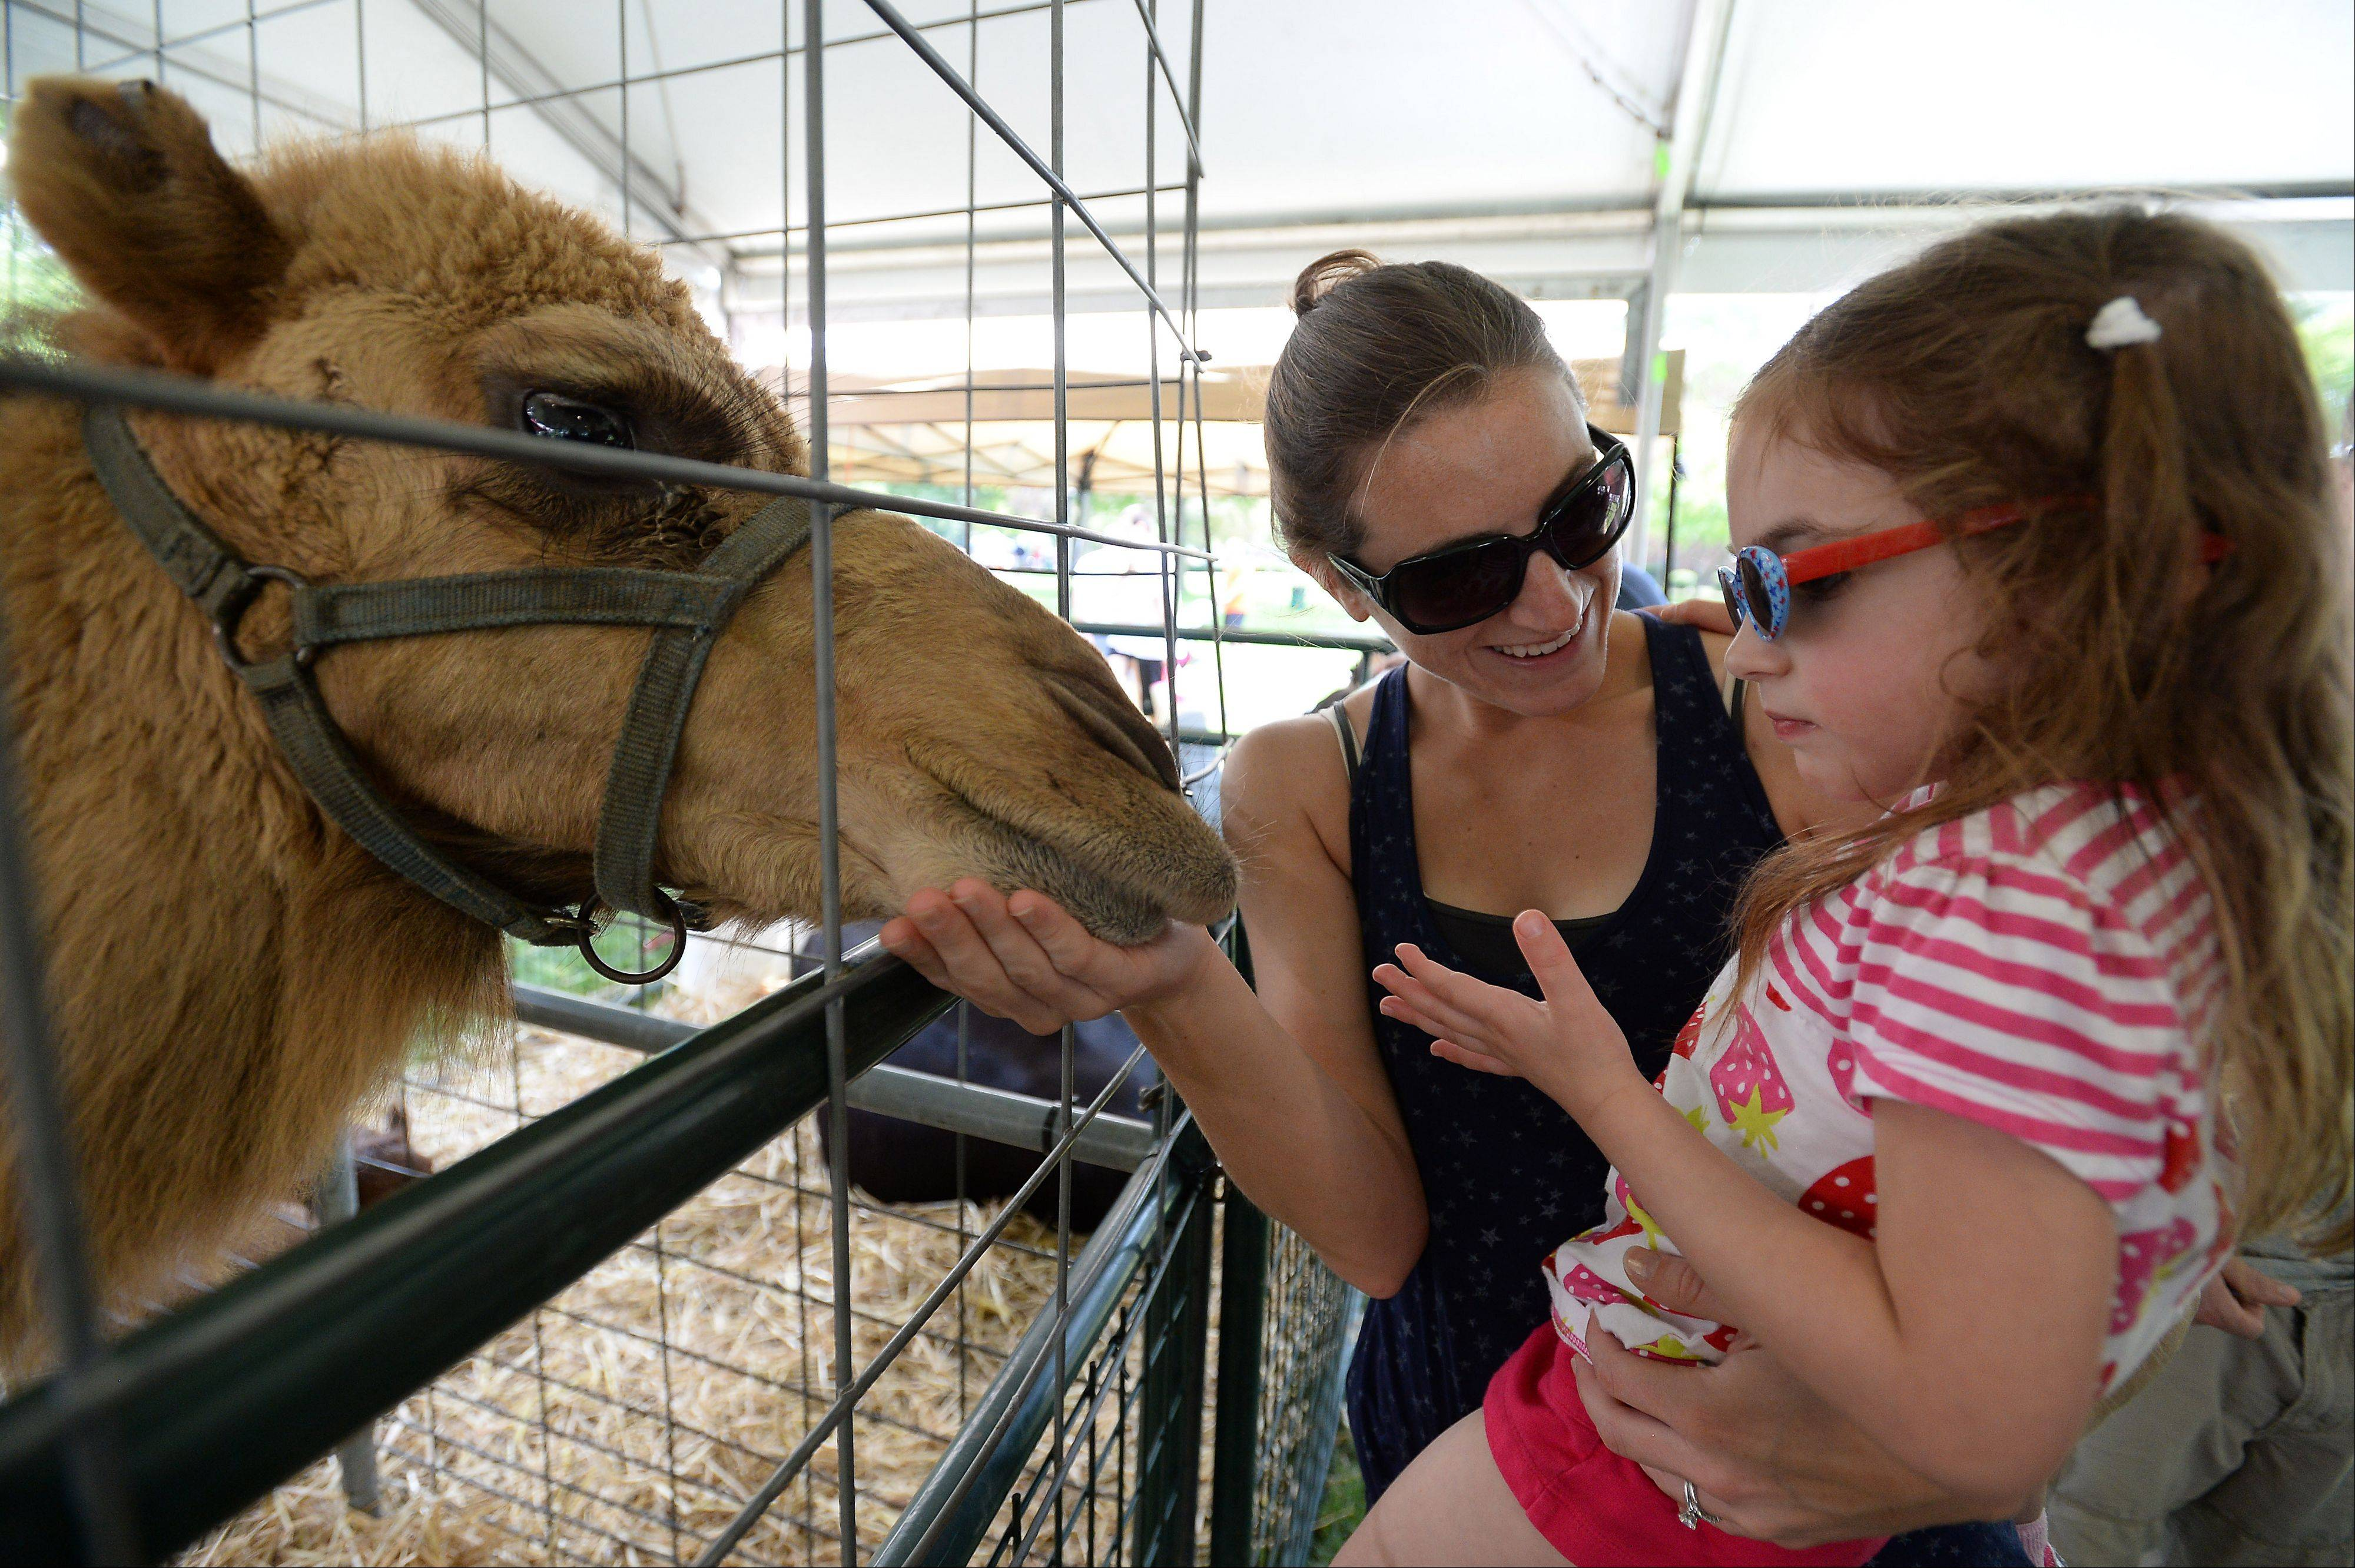 Frontier Days festivities kicks off on the Fourth of July with camel feeding at the petting zoo with Rebecca White and her niece Charlotte Brook, 3, both of Arlington Heights.